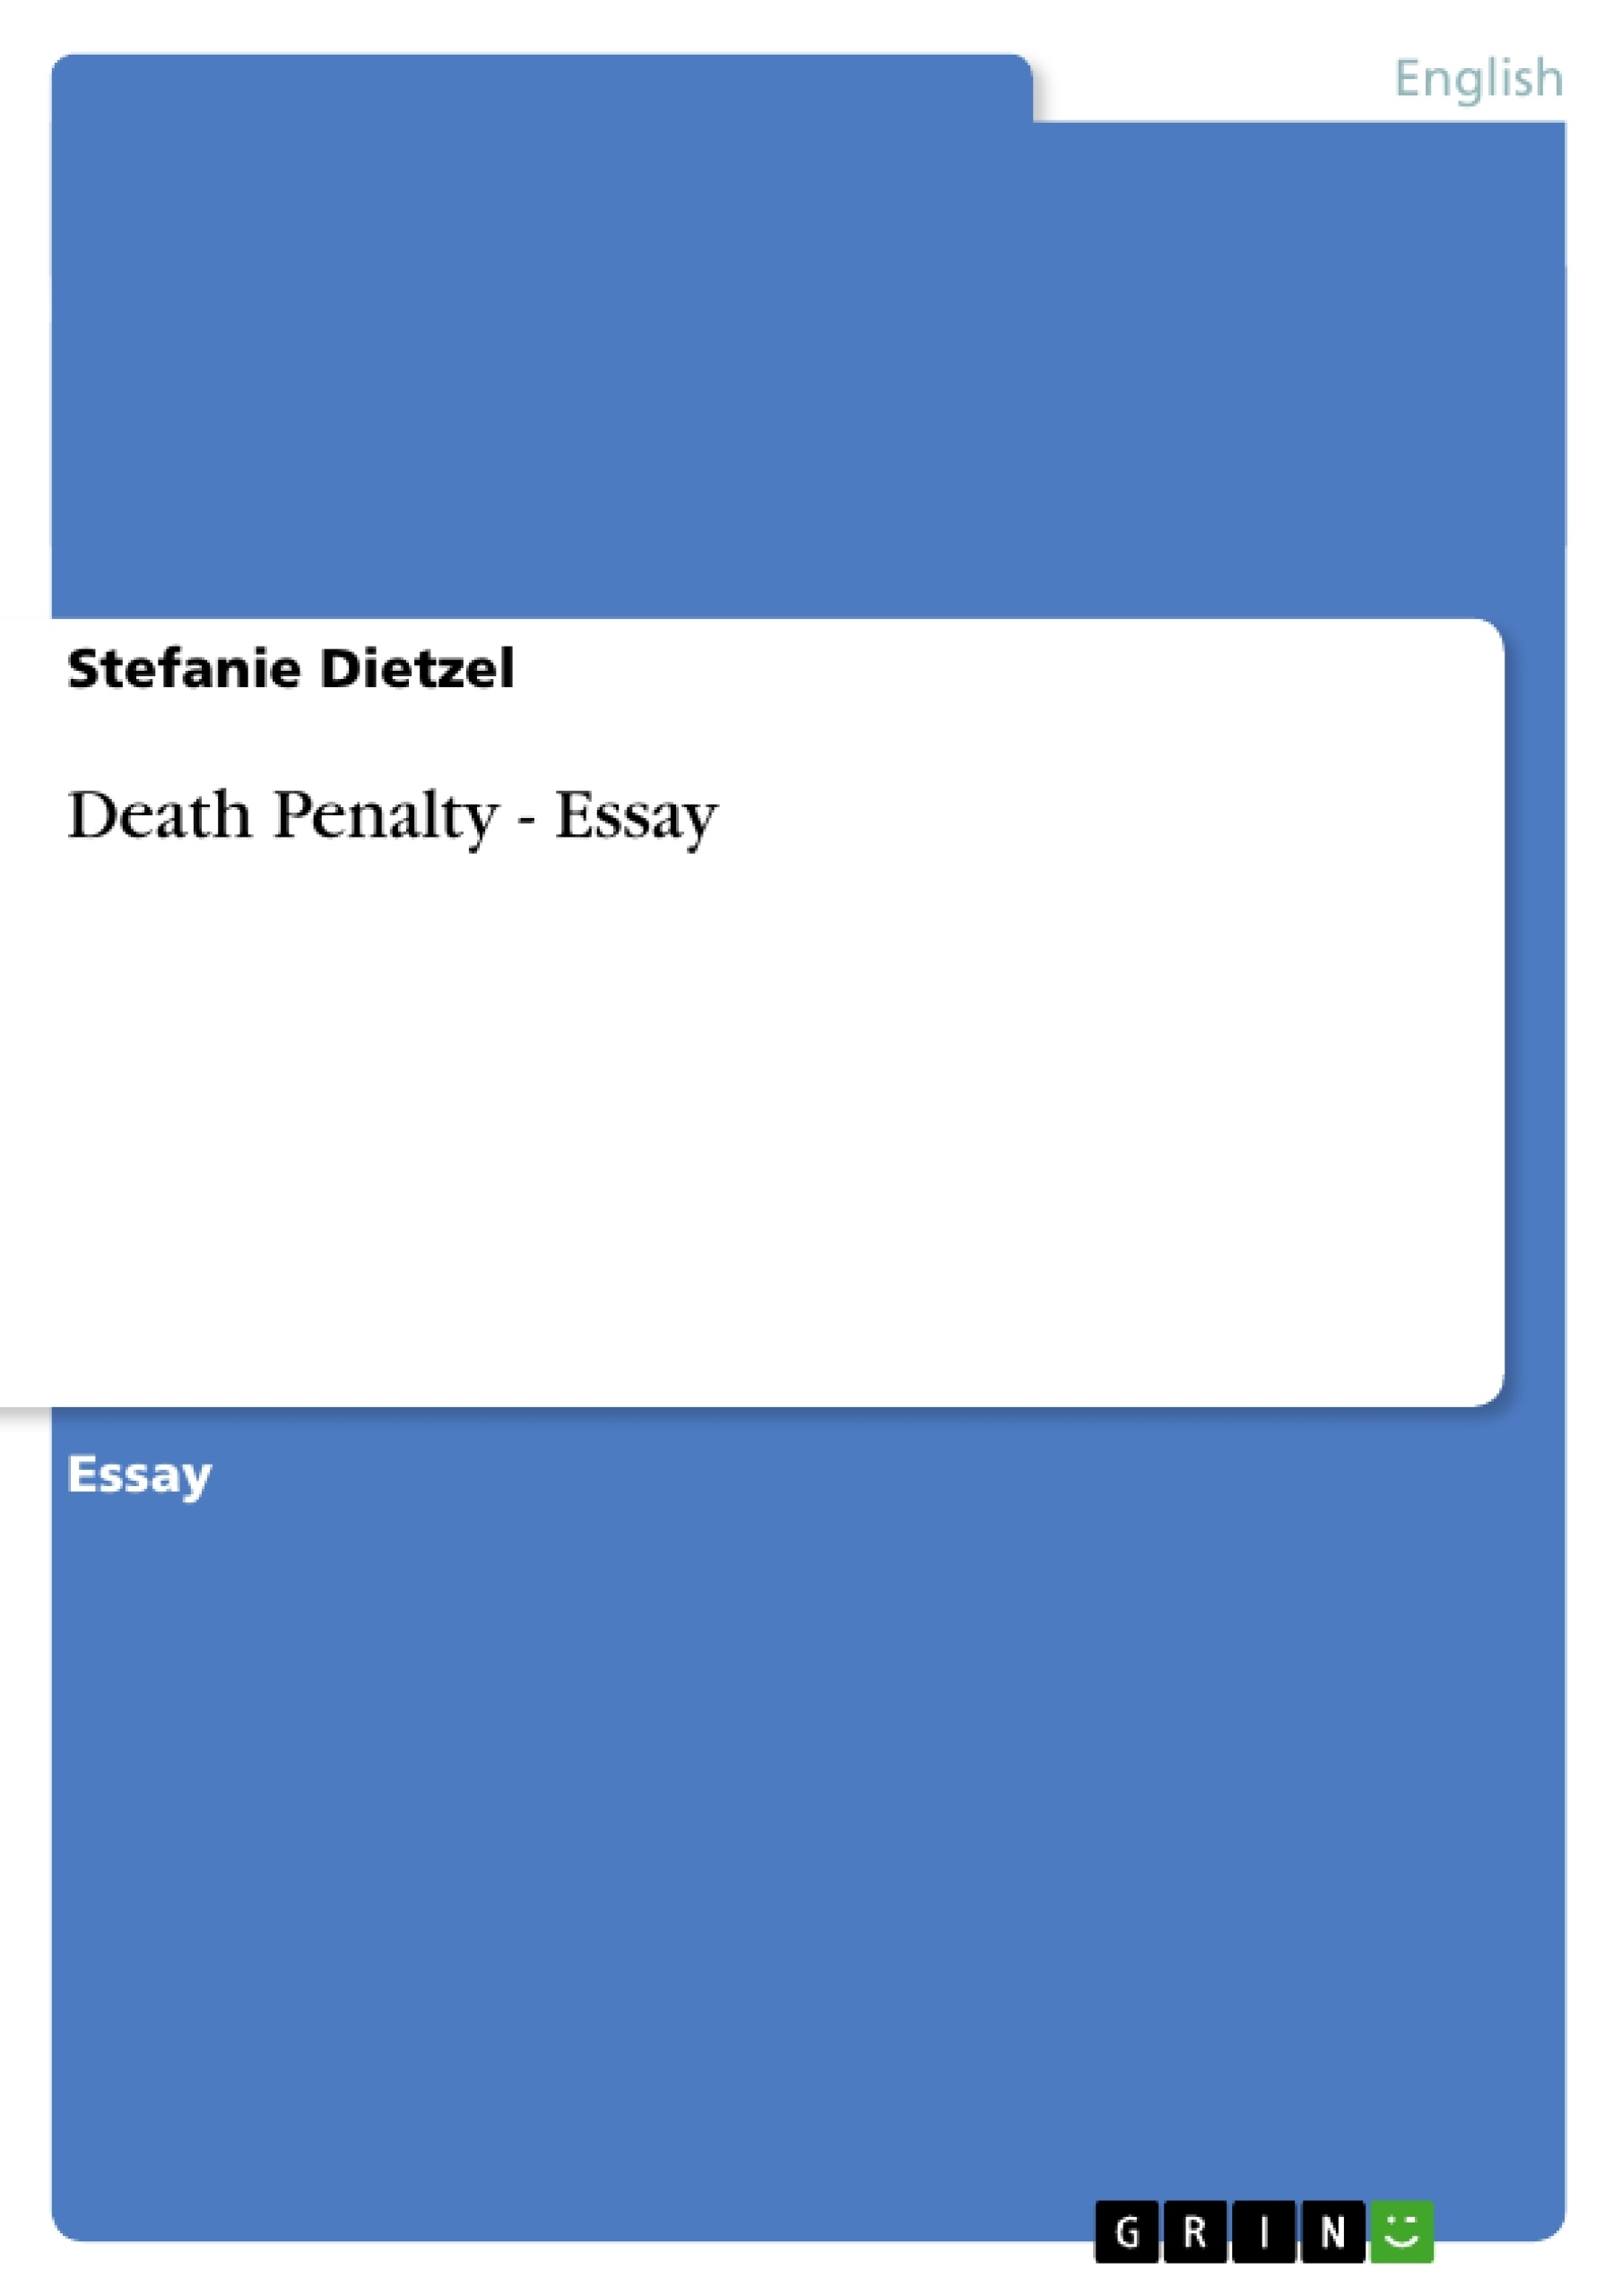 020 133402 0 Essay On Death Penalty Beautiful Should Be Abolished Or Not In Hindi Full